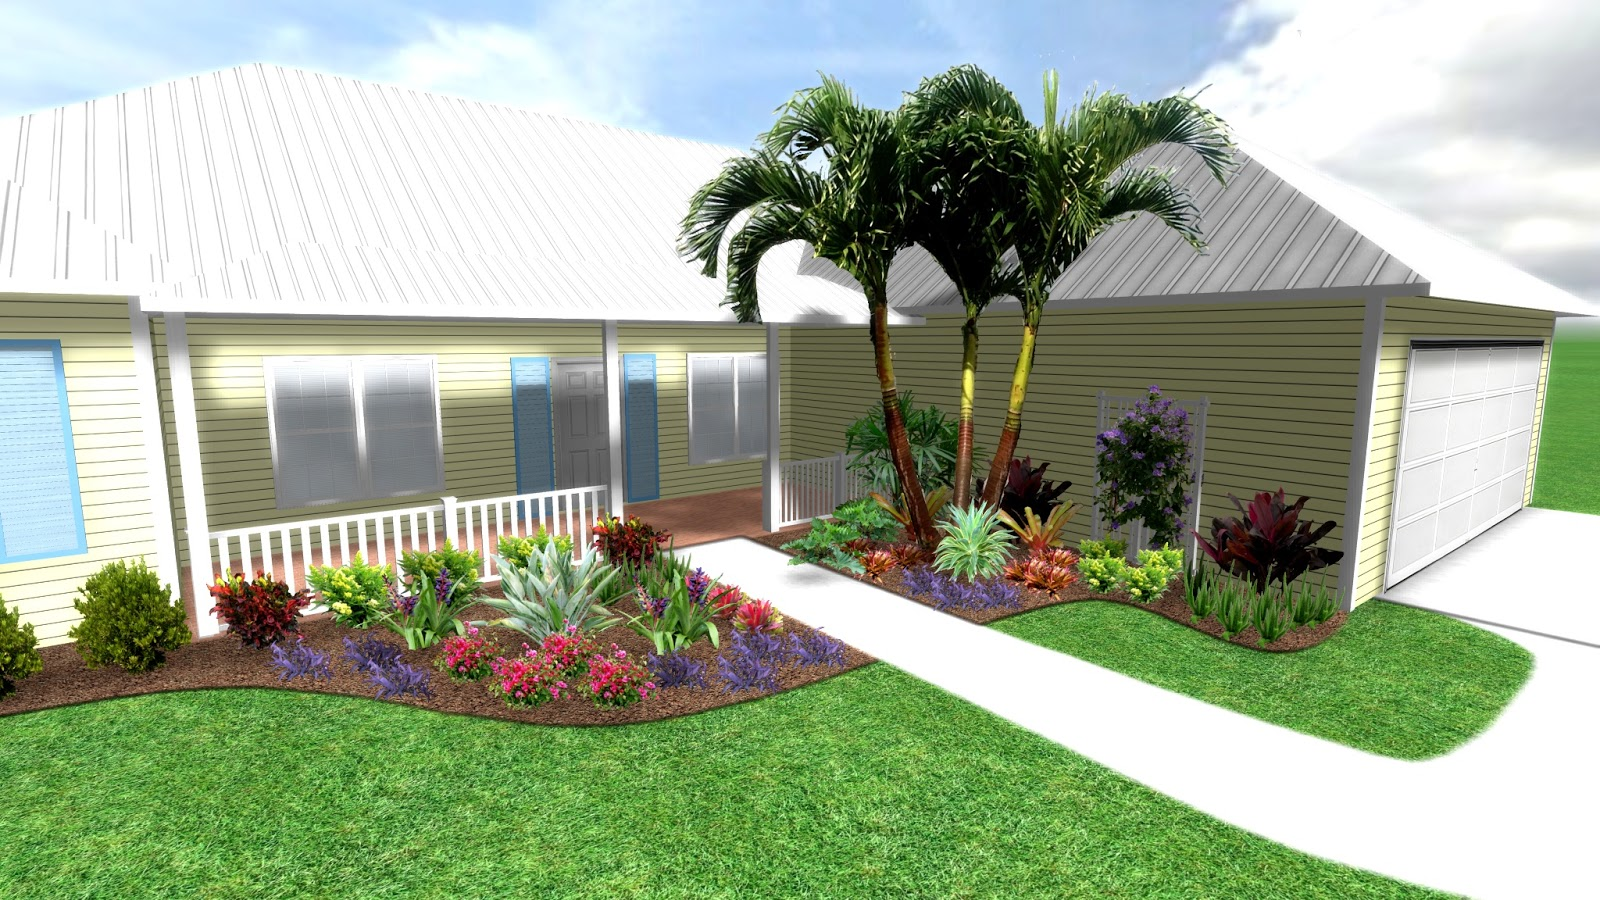 Tropical plant design for front yard landscape design in for Florida landscaping ideas for front yard